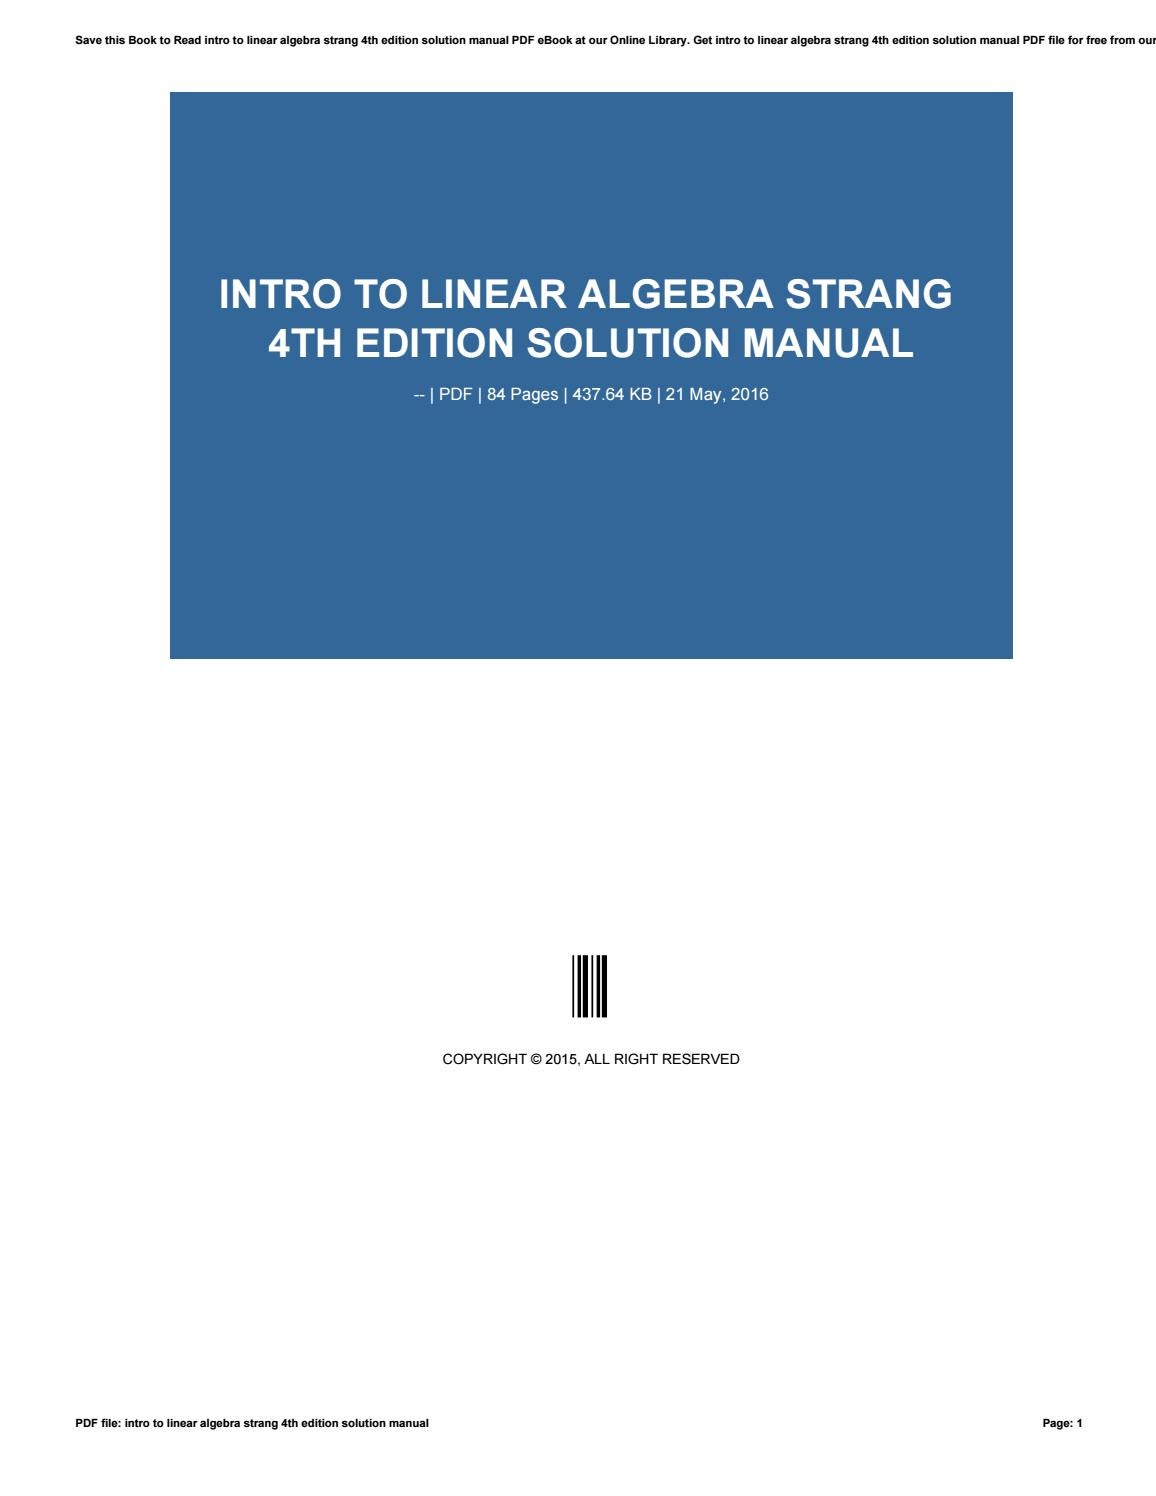 3rd edition-linear-algebra-and-its-applications-solutions-manual.